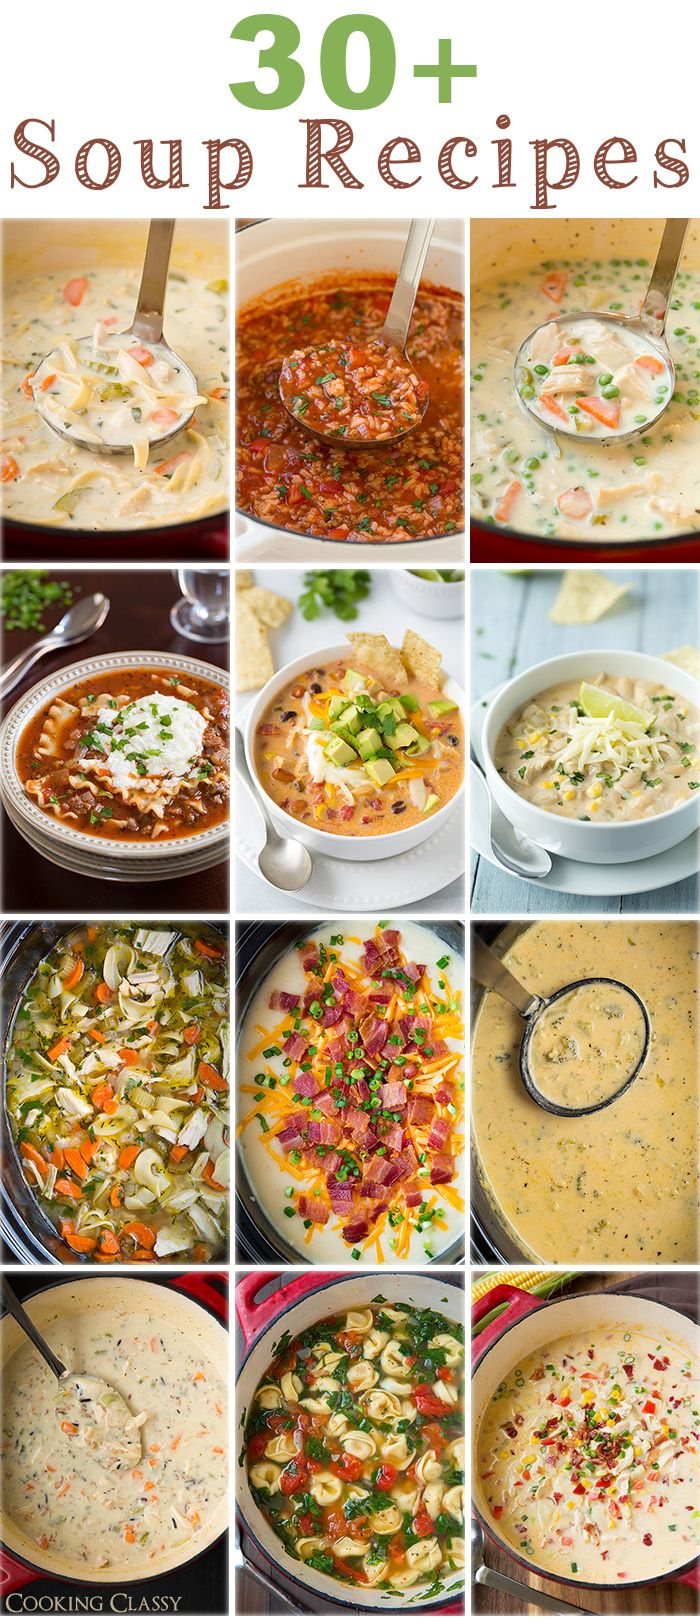 30+ Soup Recipes from Cooking Classy - theres enough to get you through the cold fall/winter ahead. I love each and every one of these!: